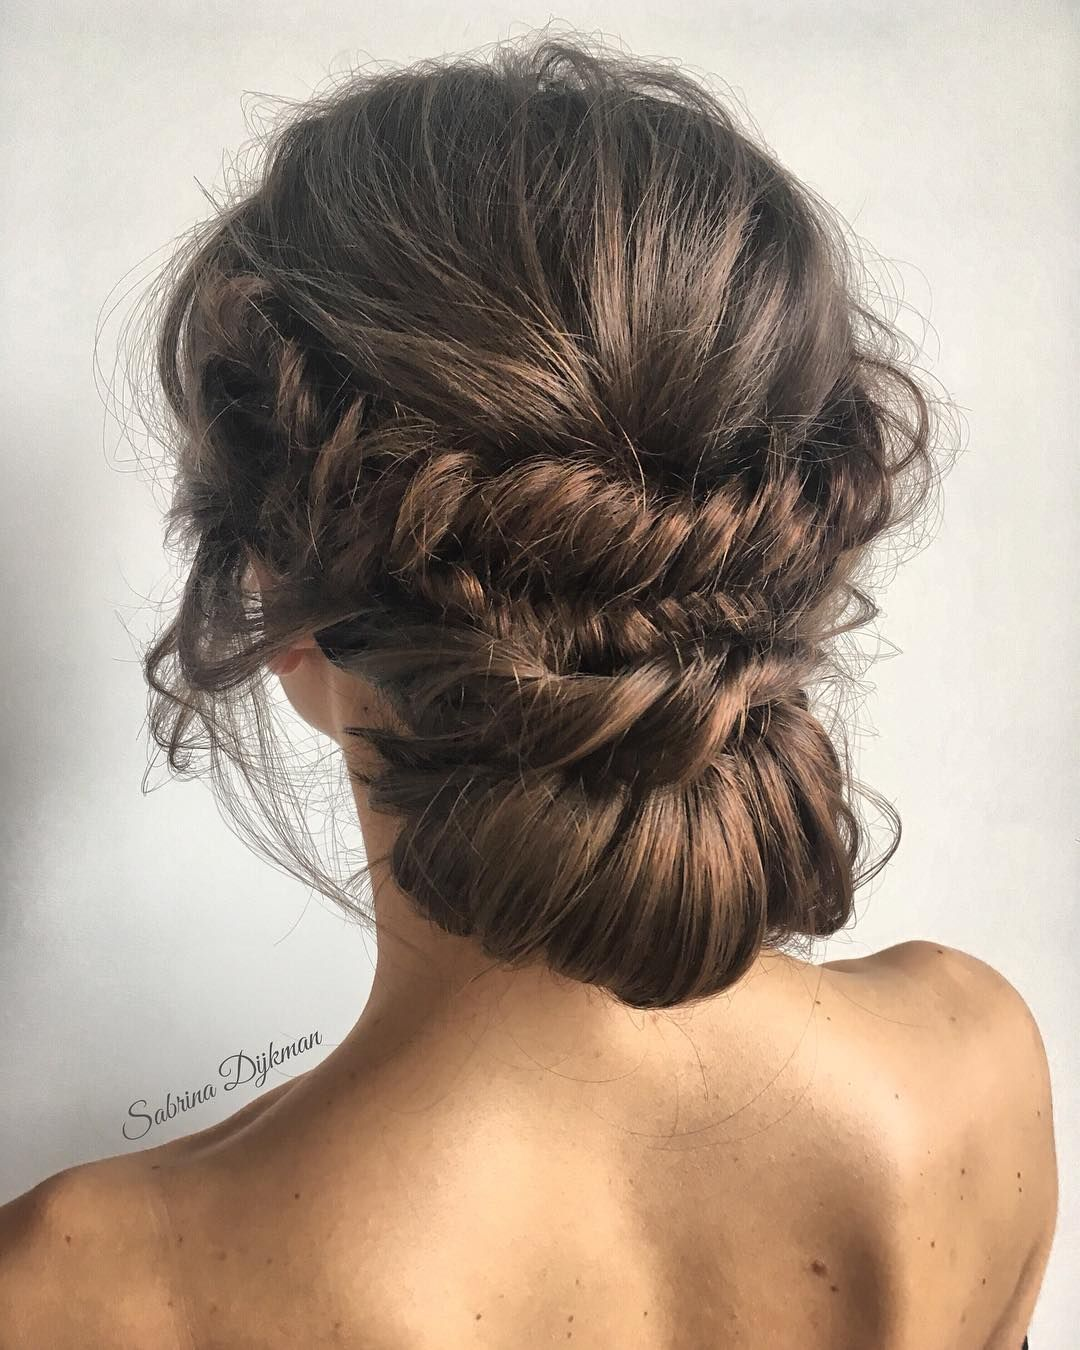 Hairstyle inspiration updo wedding hairstyles bridal updo